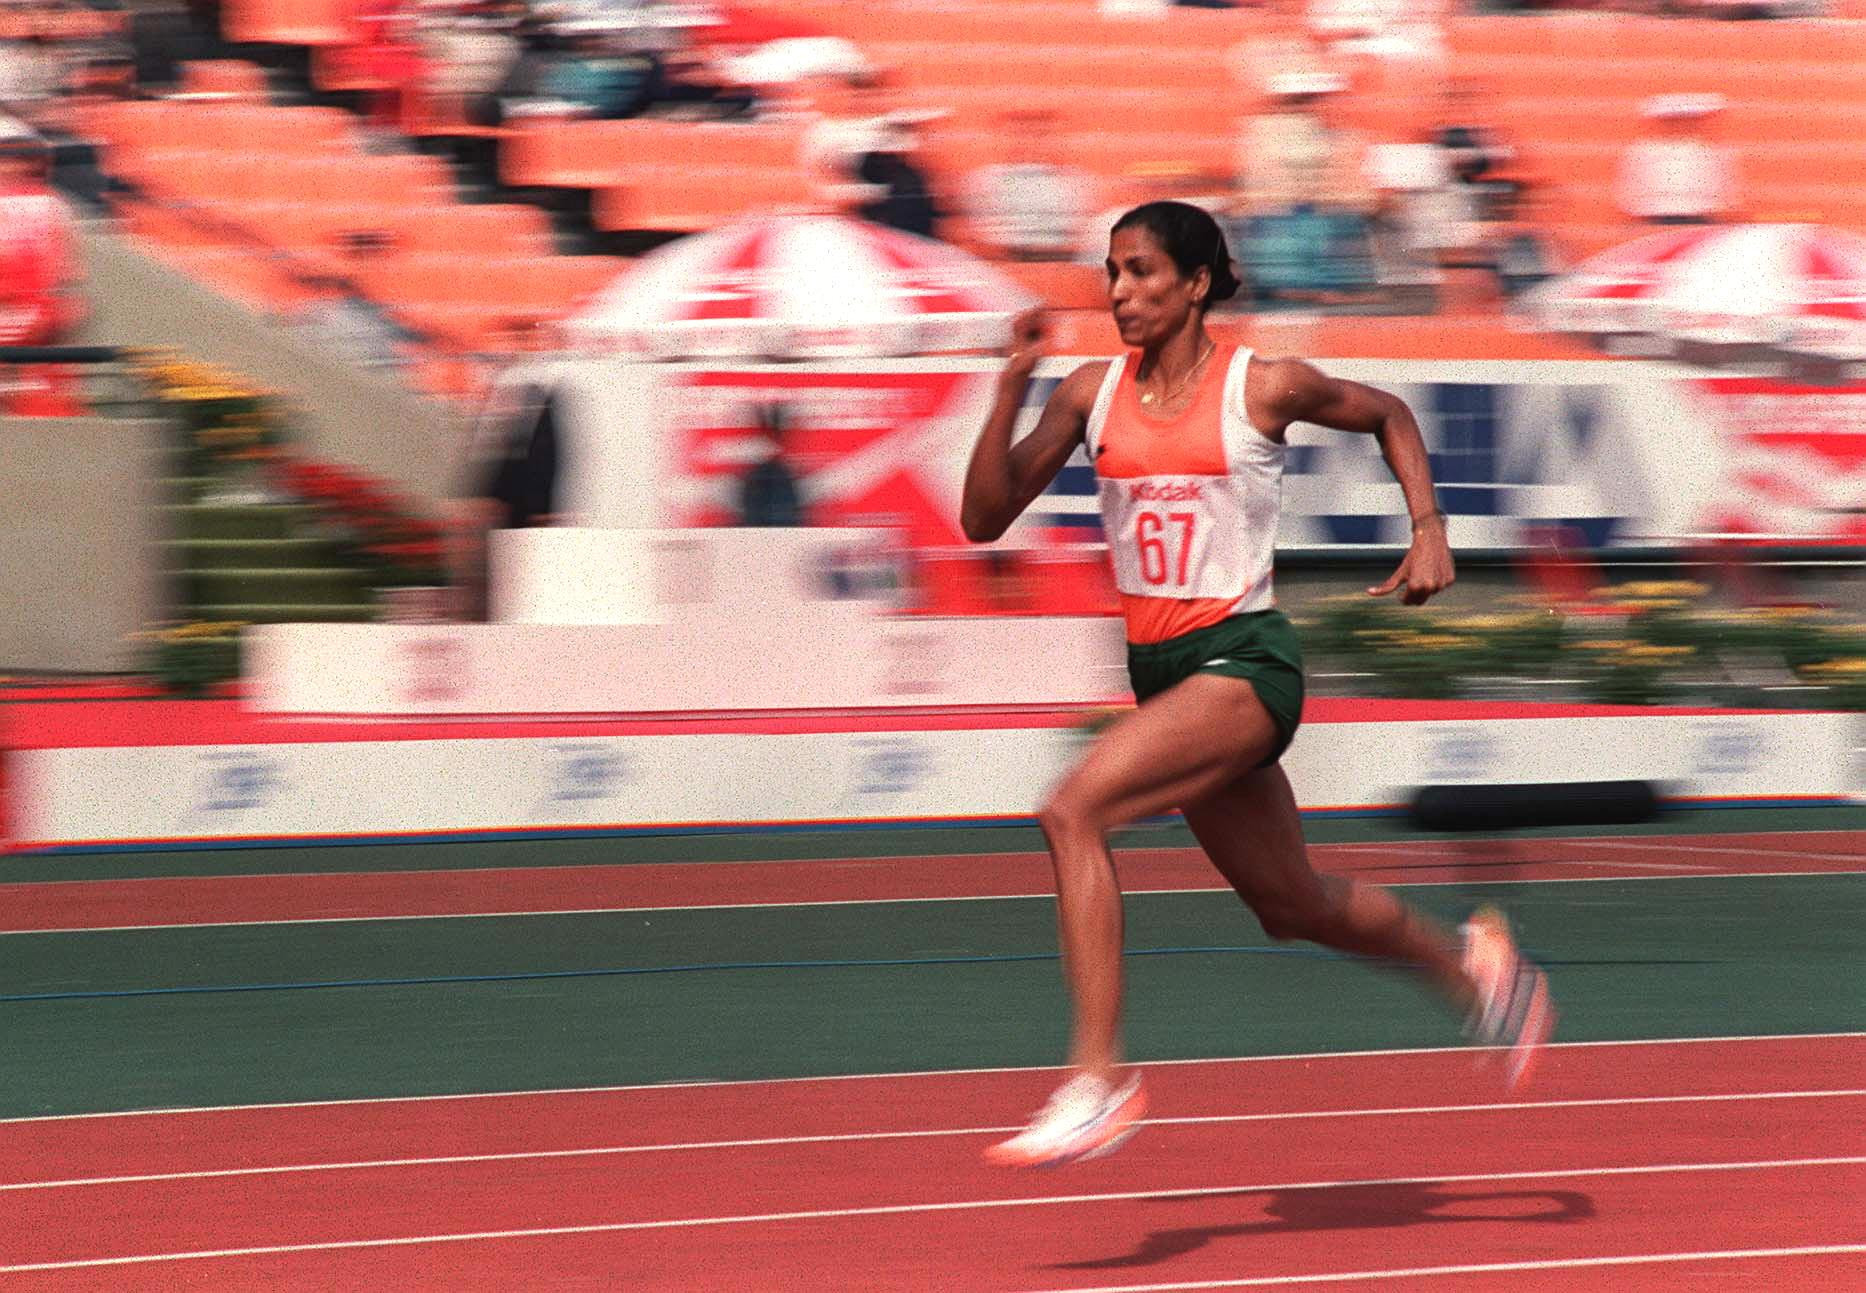 Indian athletics star calls for change and casts doubt on medal chances at Tokyo 2020